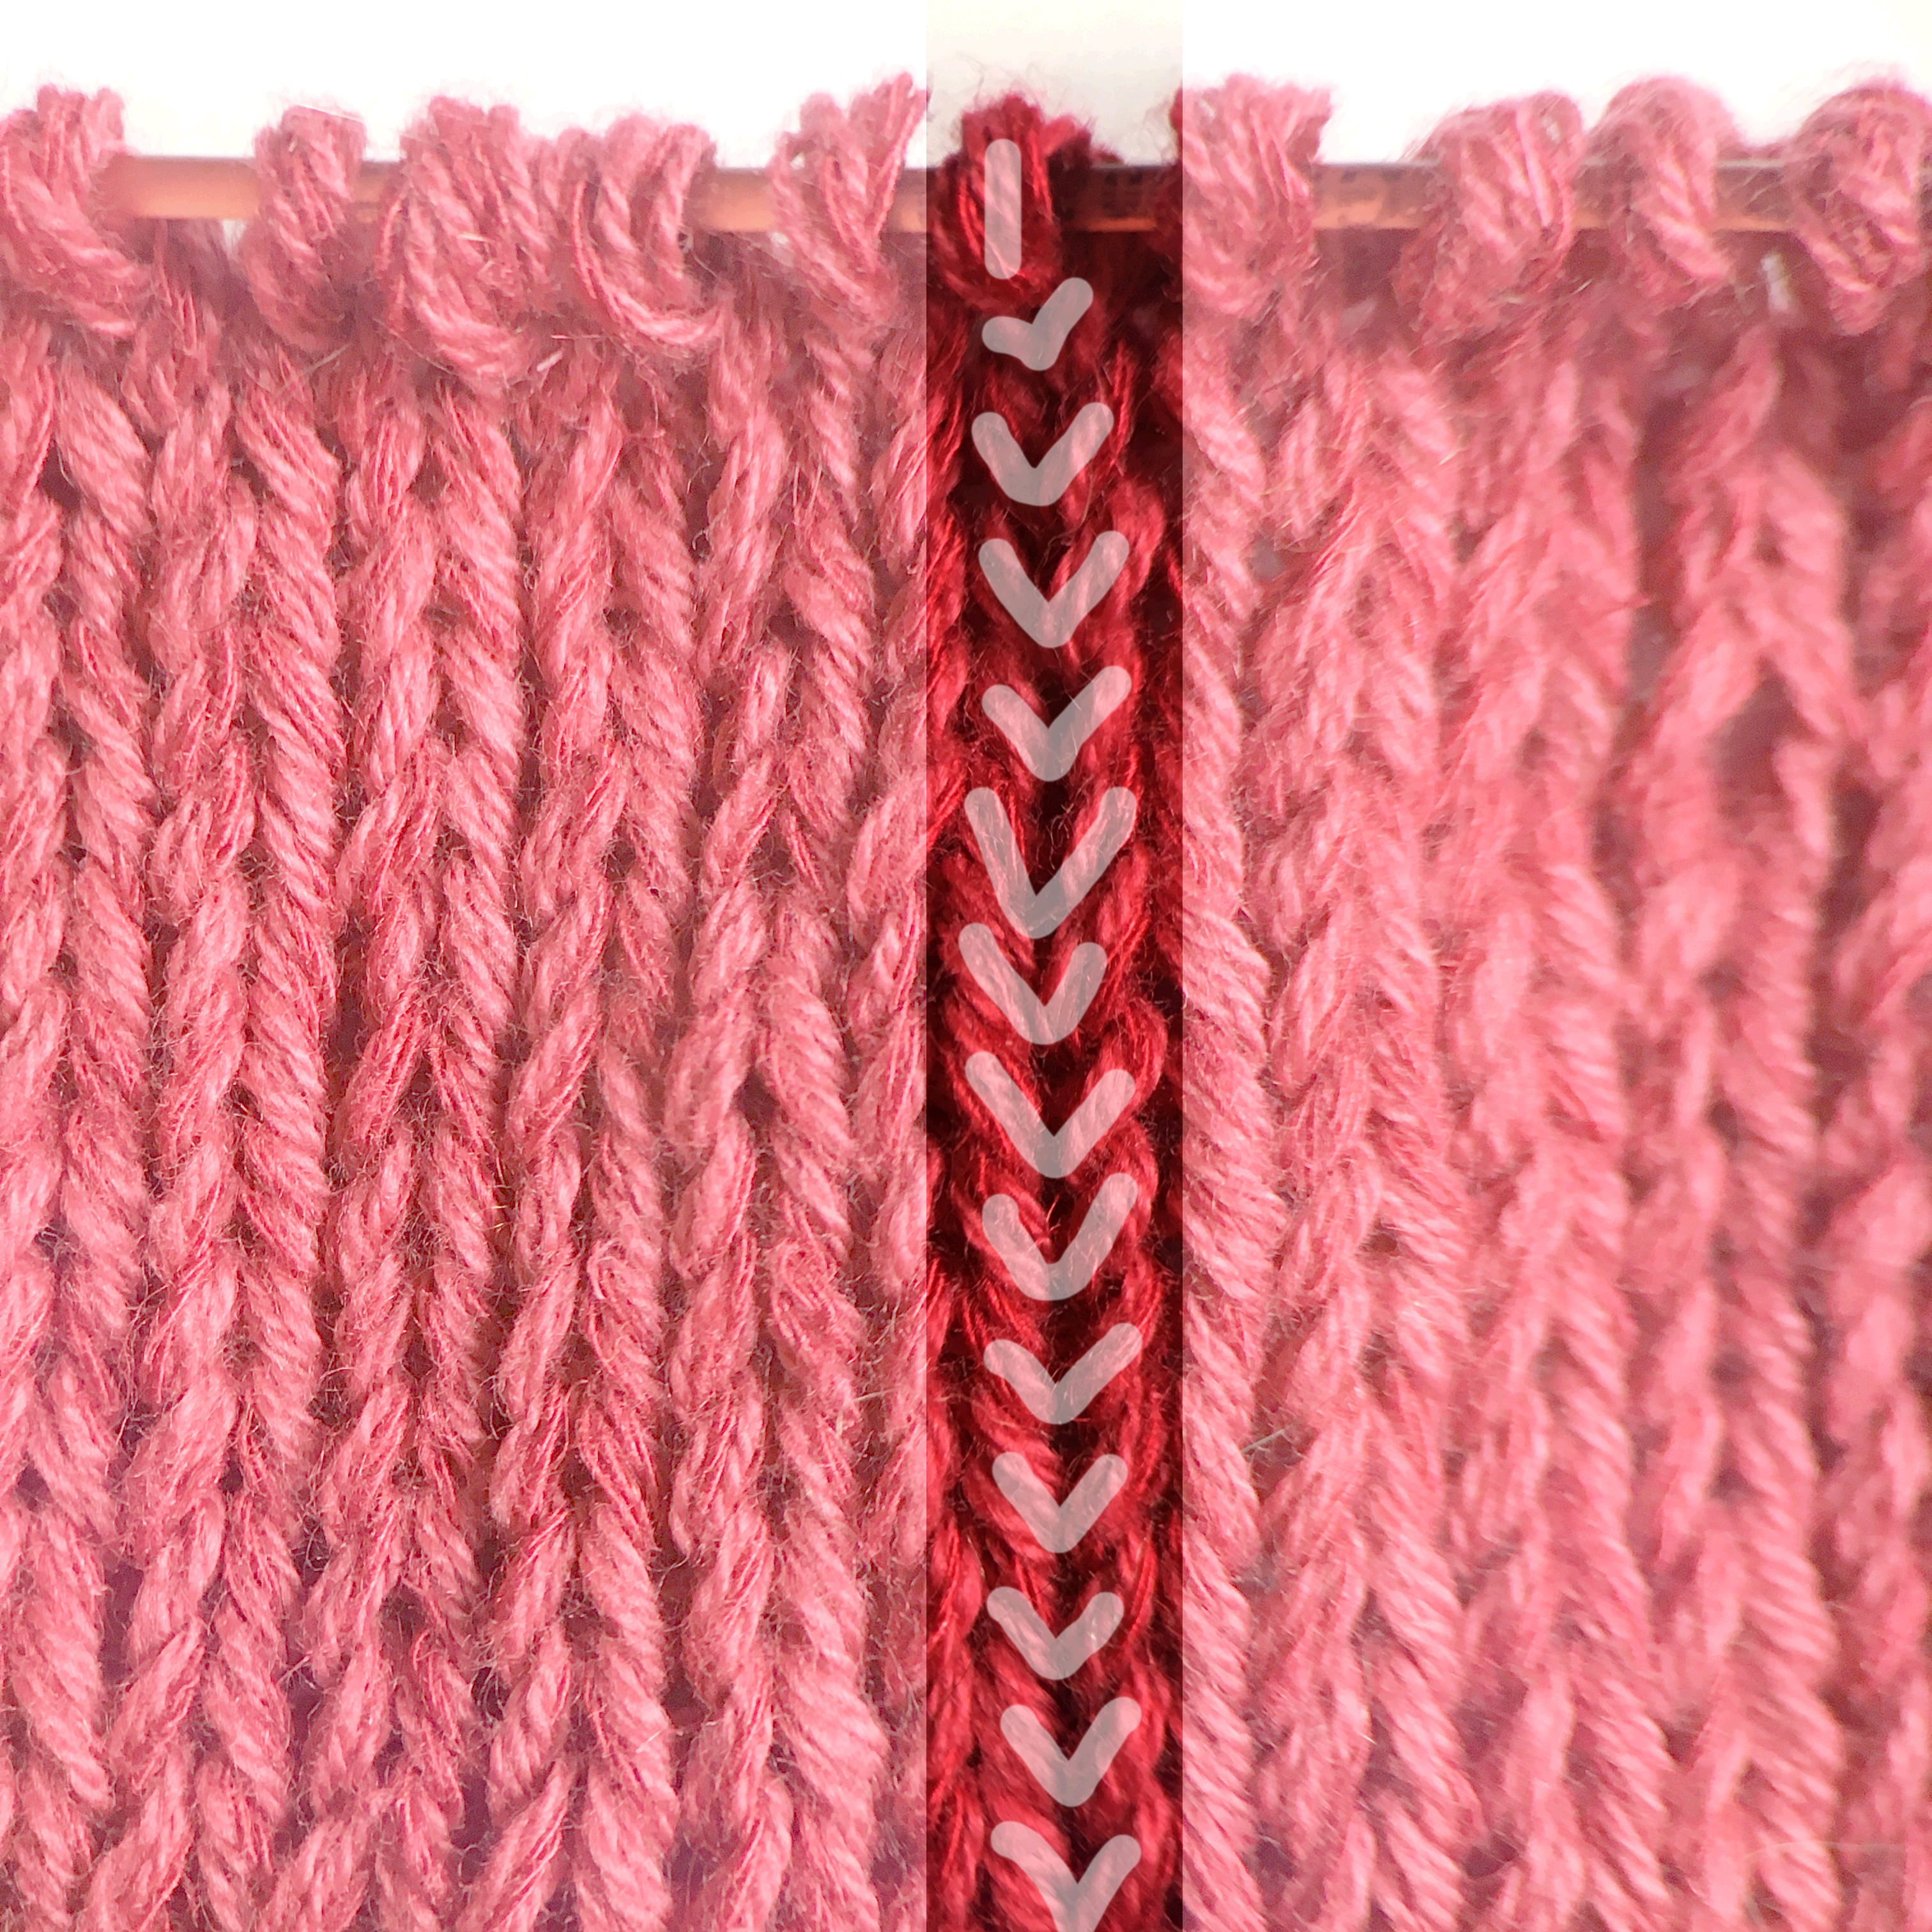 How to count knit rows